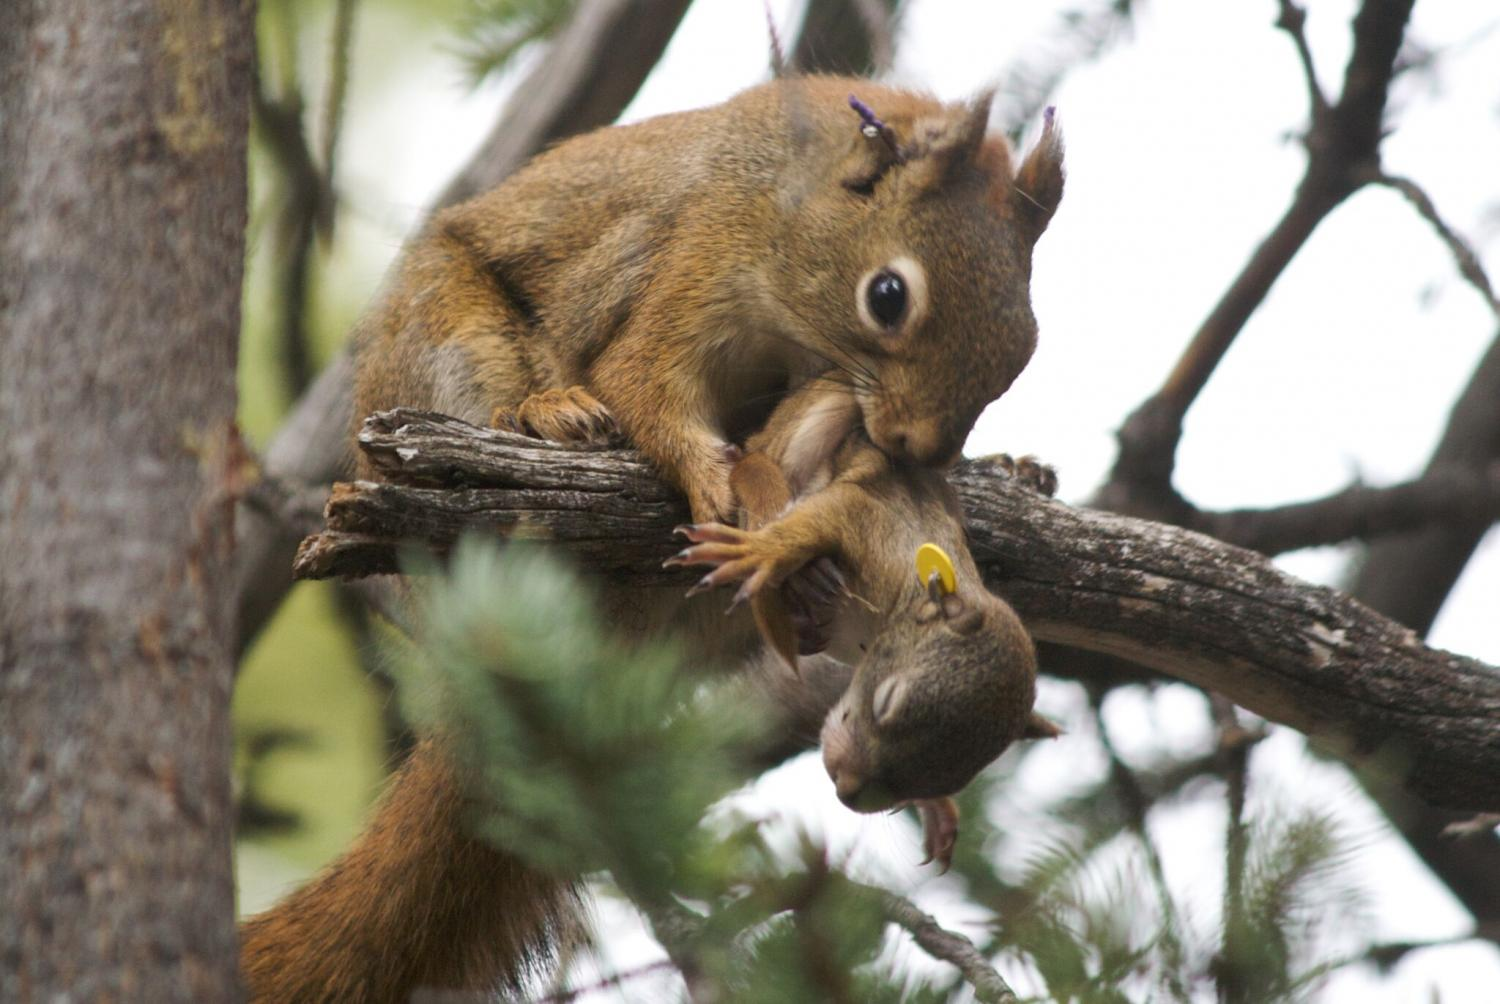 An analysis of squirrel behavior in ecology